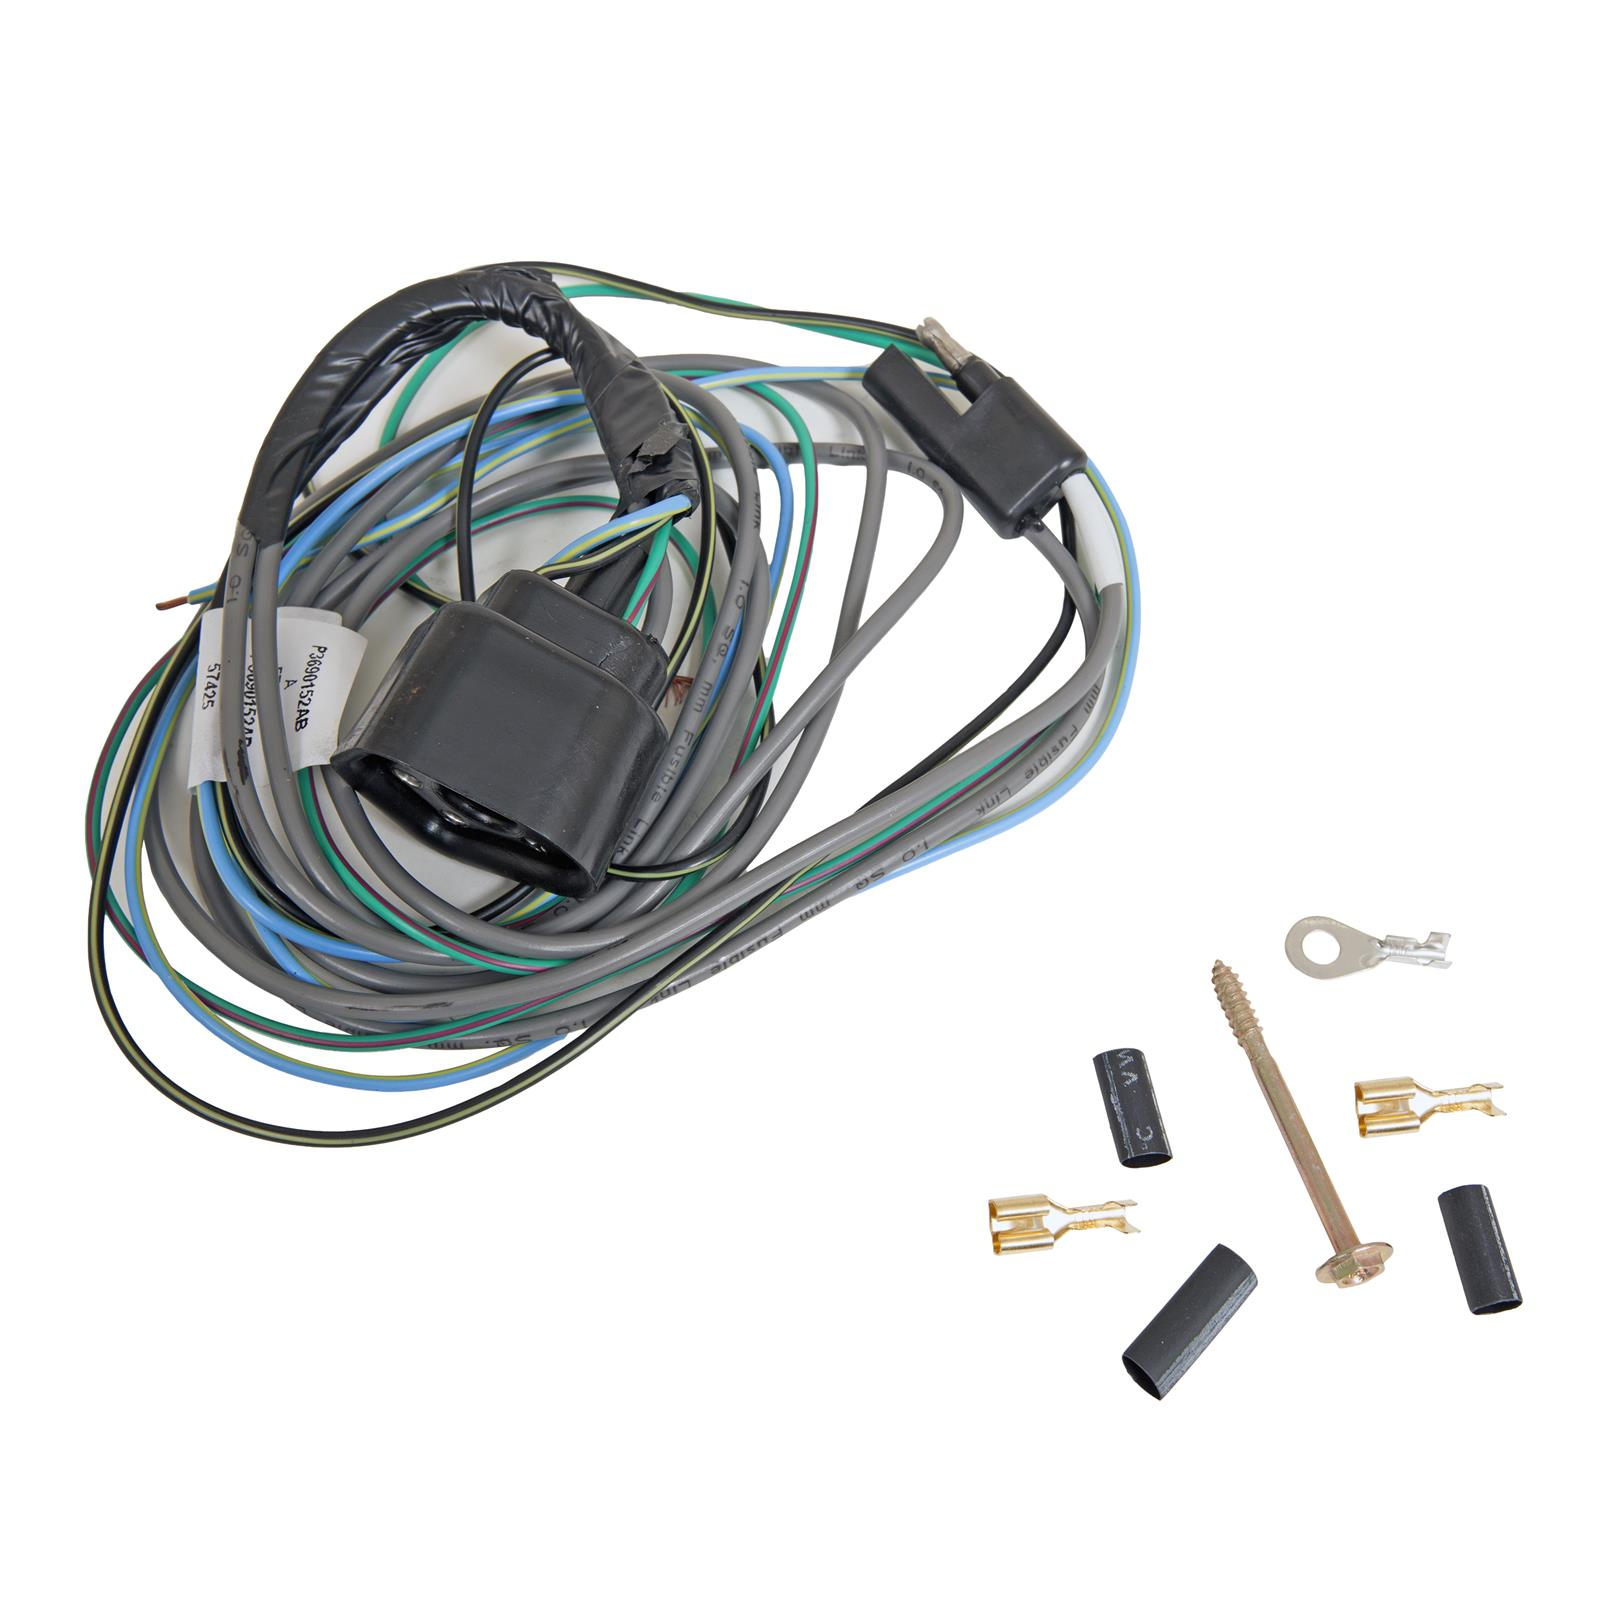 Summit Racing Mopar Electronic Control Wiring Harnesses Sum 851010 2001 Cadillac Eldorado Harness Free Shipping On Orders Over 49 At